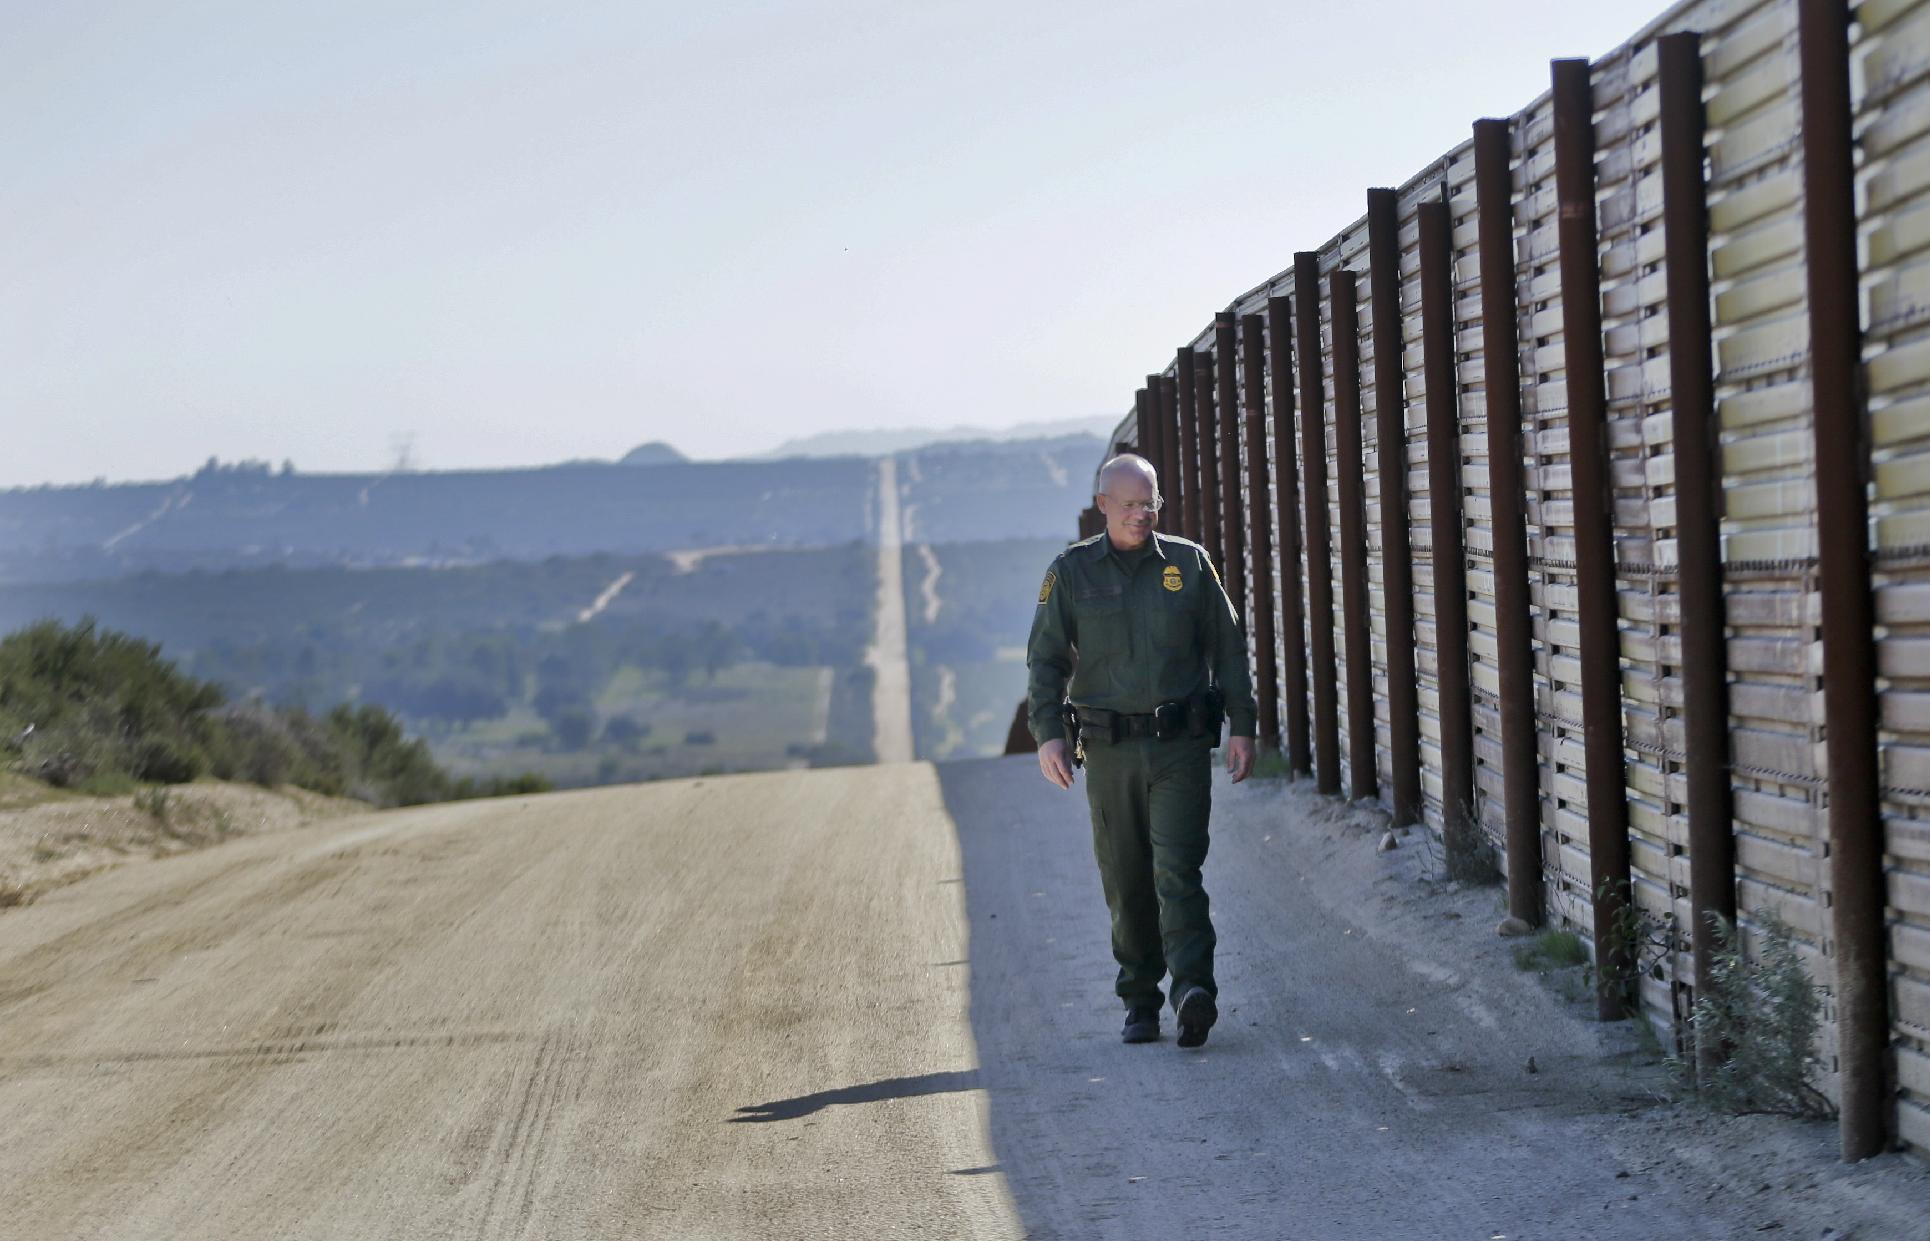 """In this Monday, March 25, 2013 photo, Border Patrol agent Richard Gordon, a 23-year veteran of the agency, walks the border fence in the Boulevard area east of San Diego looking for signs that reveal movement of illegal immigrants in the rugged, mountainous terrain in Boulevard, Calif. For the past 16 years, Gordon has been one of the top """"sign-cutters"""" or trackers in the Border Patrol. (AP Photo/Lenny Ignelzi)"""